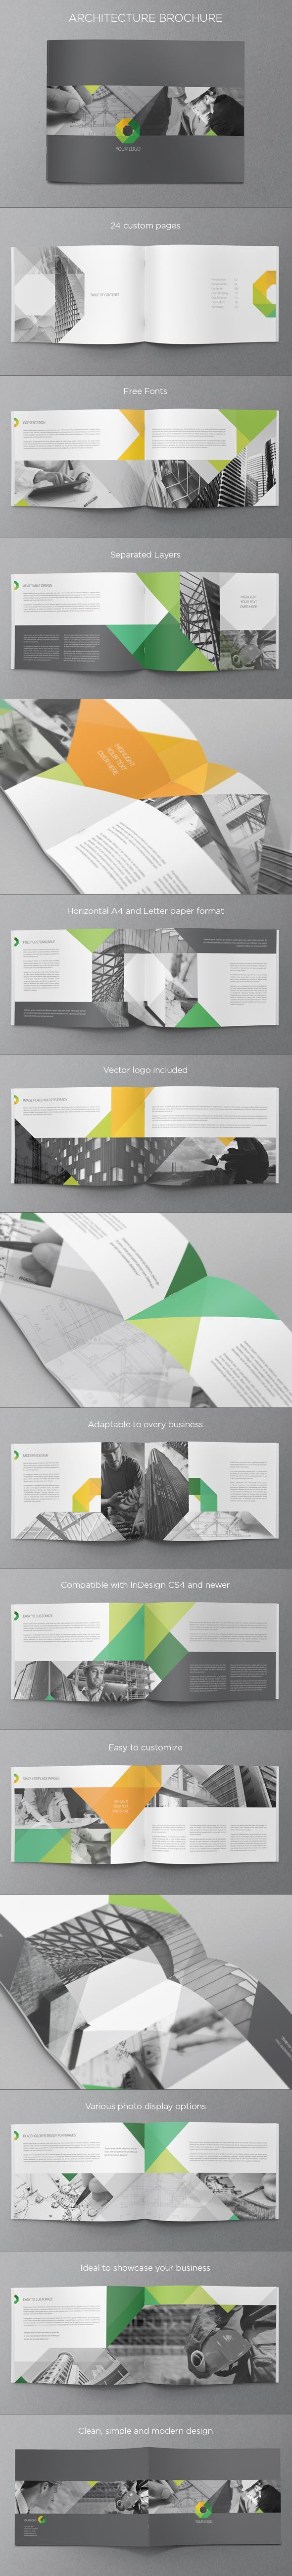 Architecture Brochure. Download here: http://graphicriver.net/item/modern-architecture-brochure/5478285 #design #brochure: